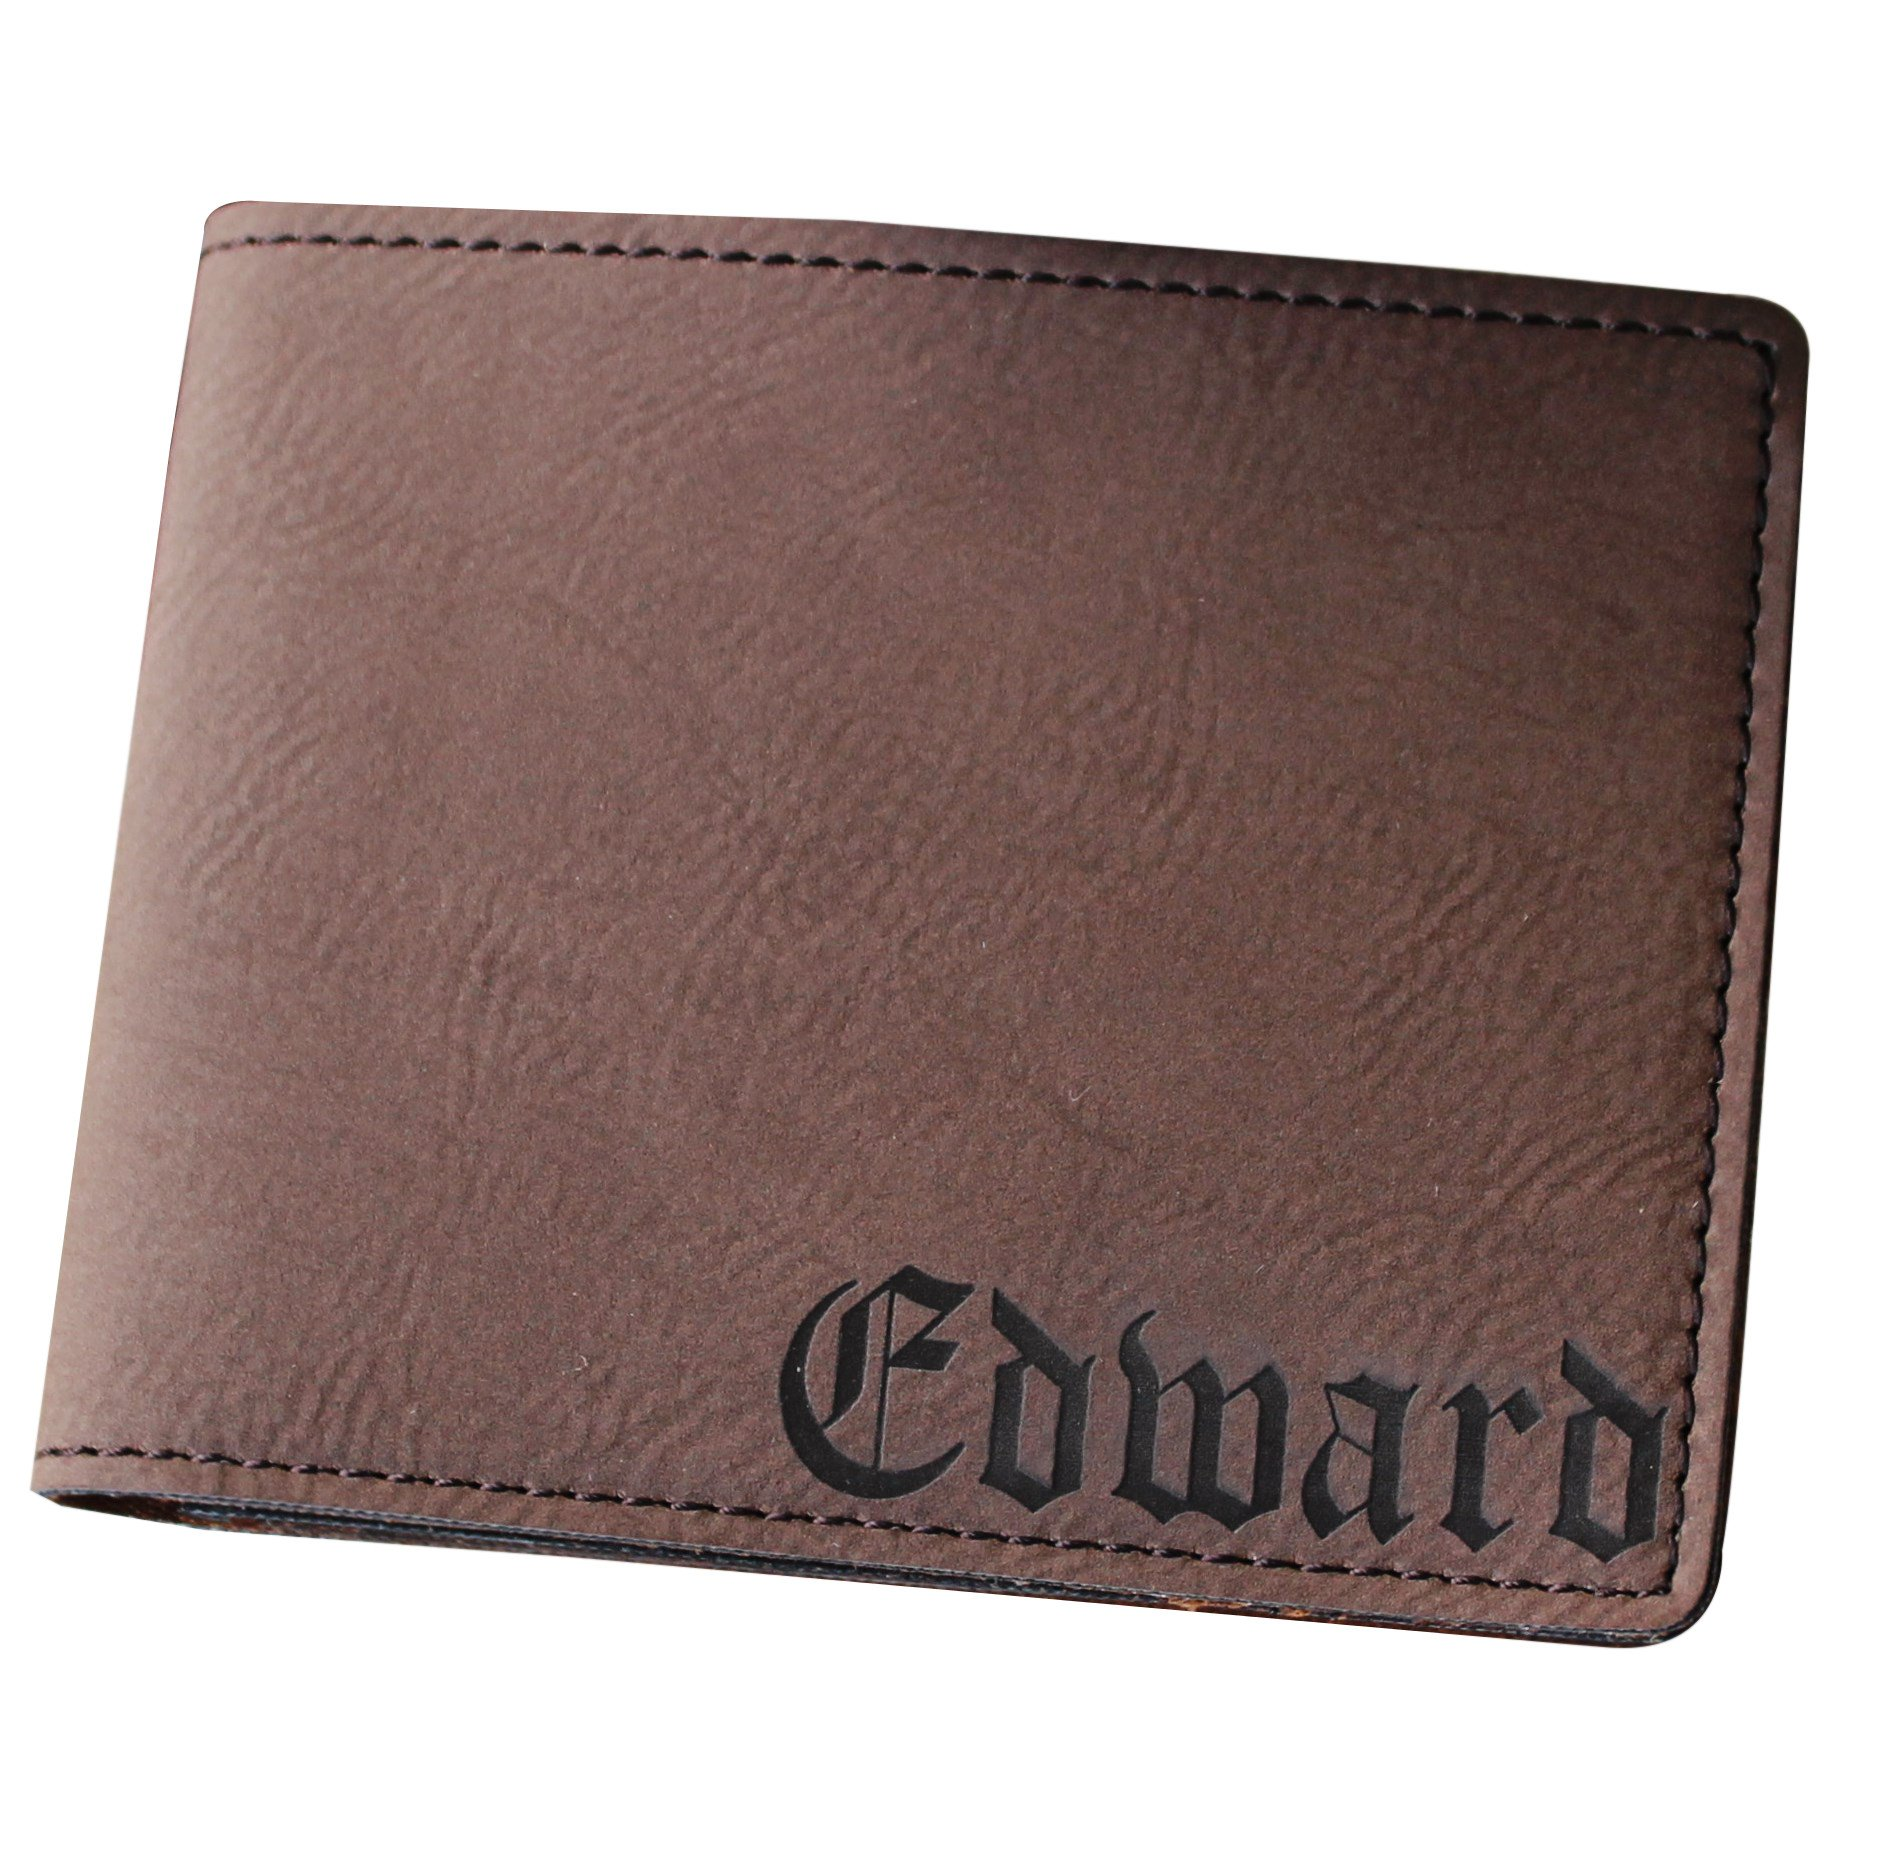 Custom Personalized Brown Bi-Fold Men's Wallet - Groomsman Fathers Day Gift - Engraved